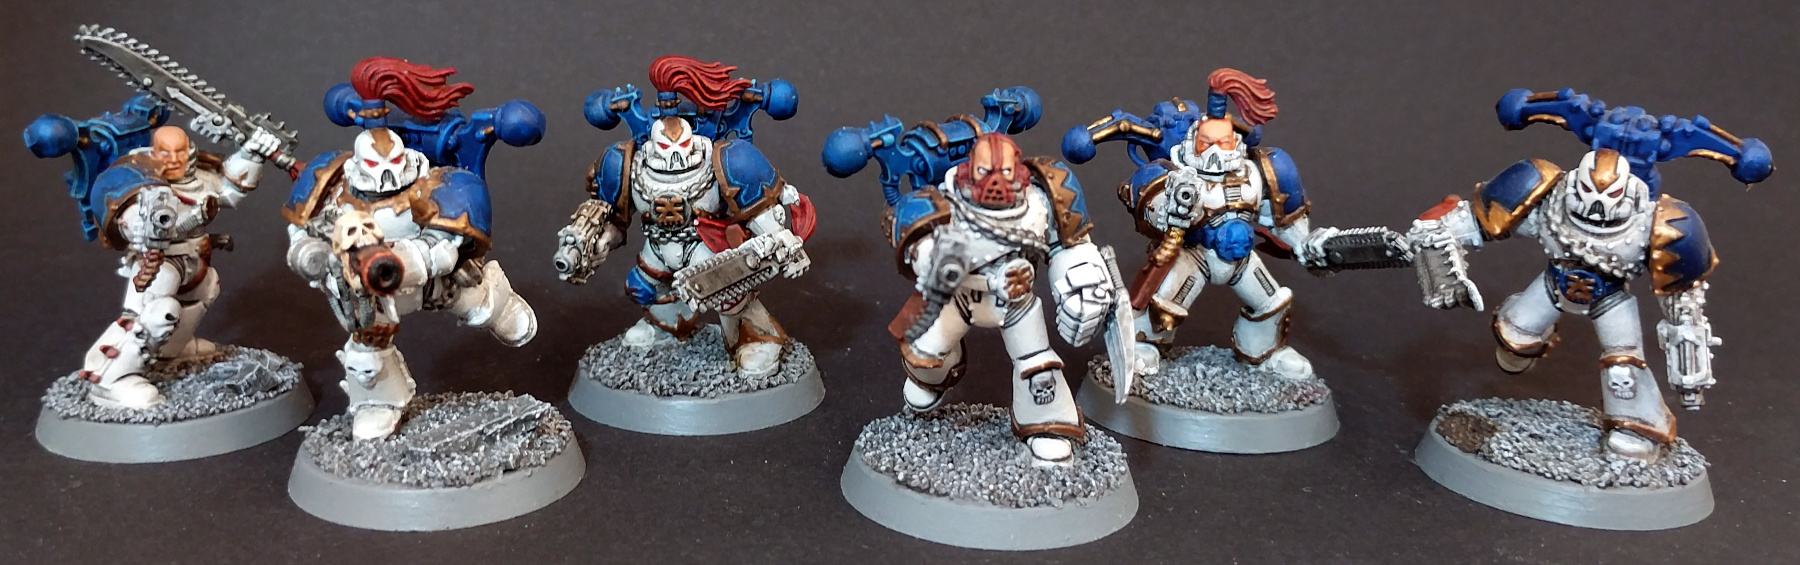 World Eaters Tactical Squad 1 - Bolt Pistol, Chainsaw, Melter, Champion with Lightning Claw